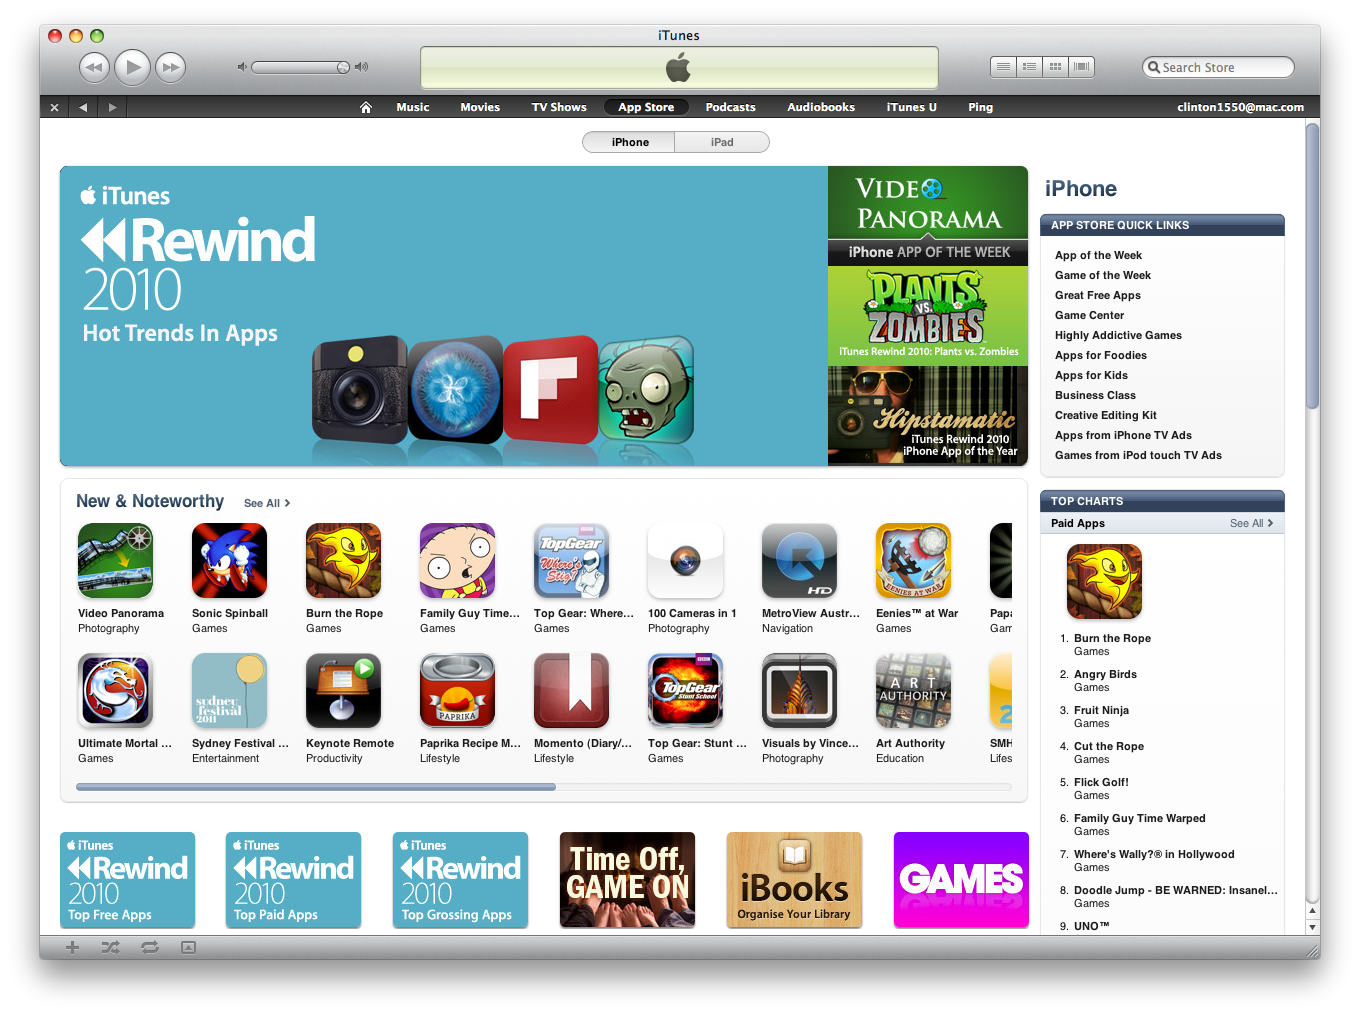 Right: The iOS App Store in